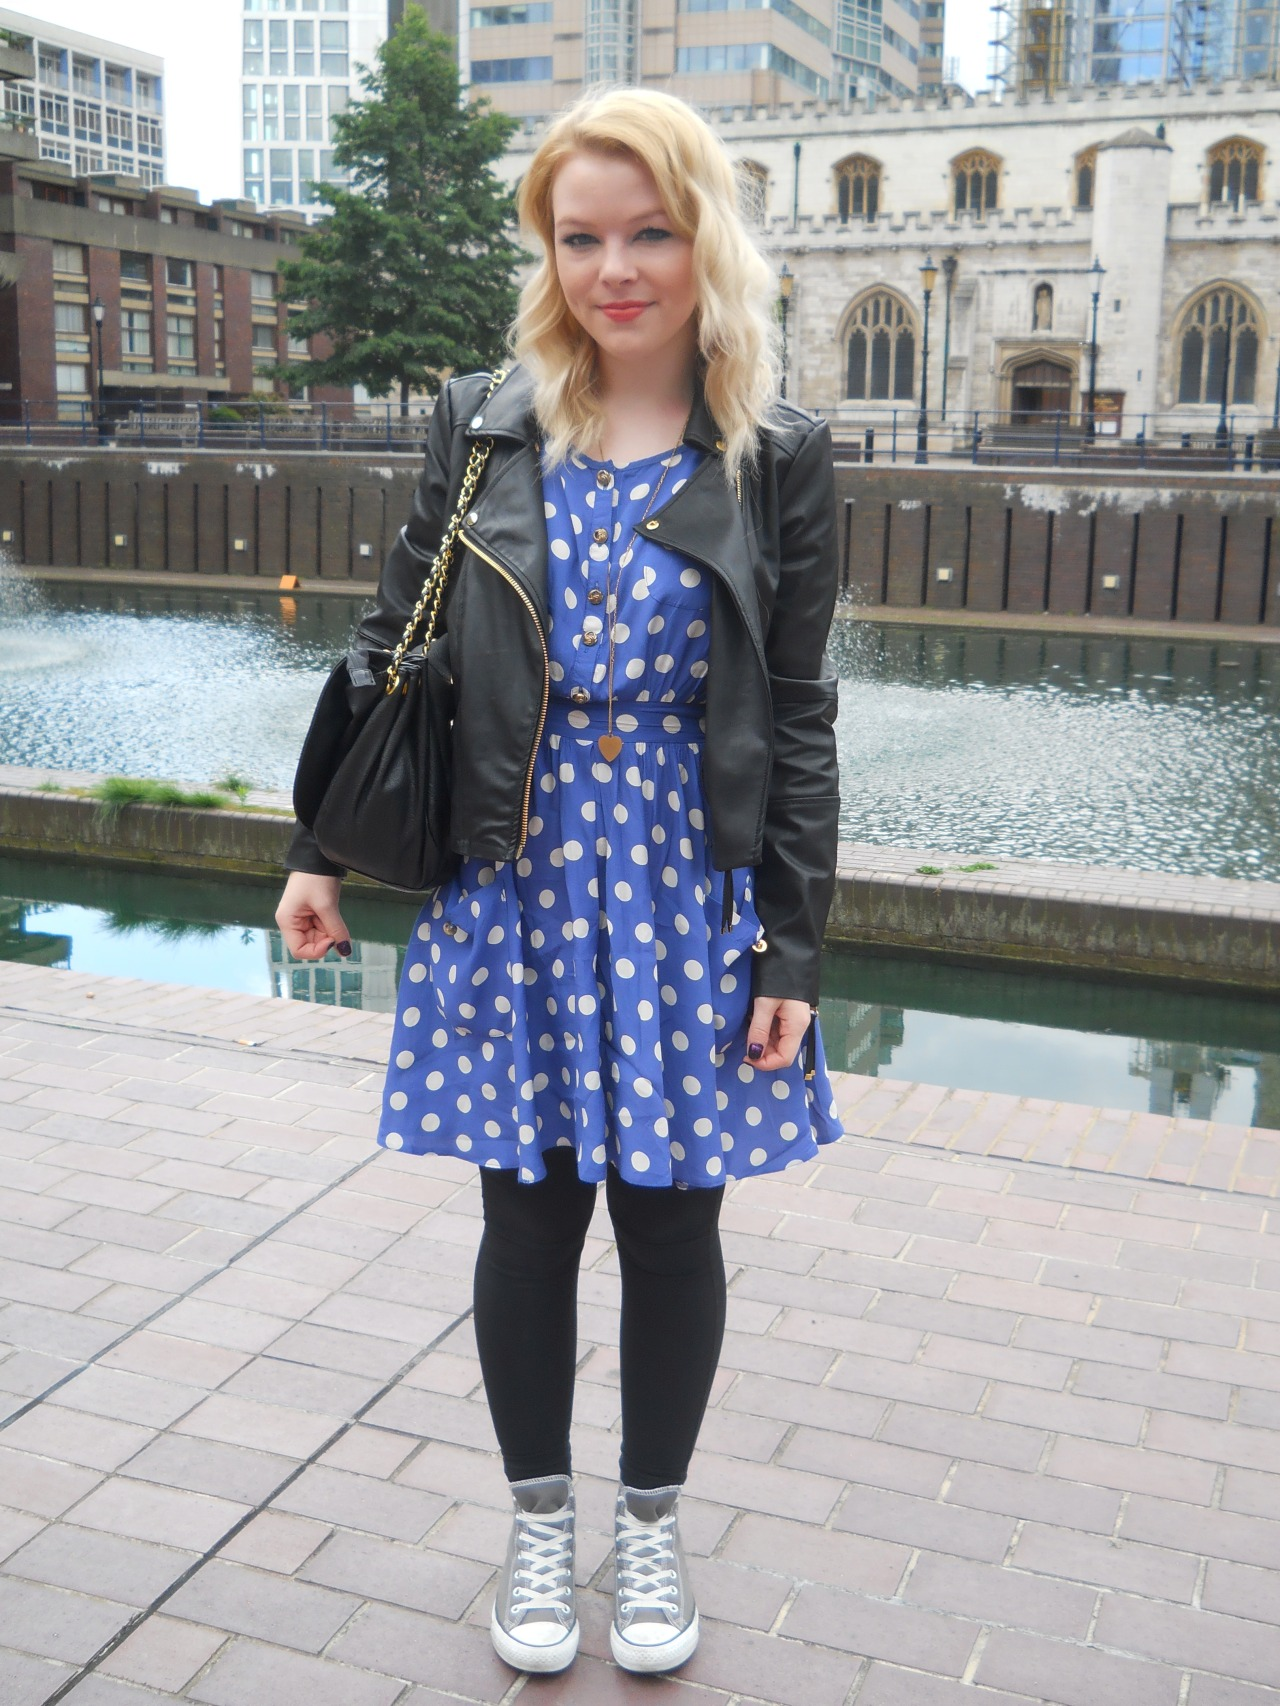 Ootd Bond At The Barbican She Hearts The High Street